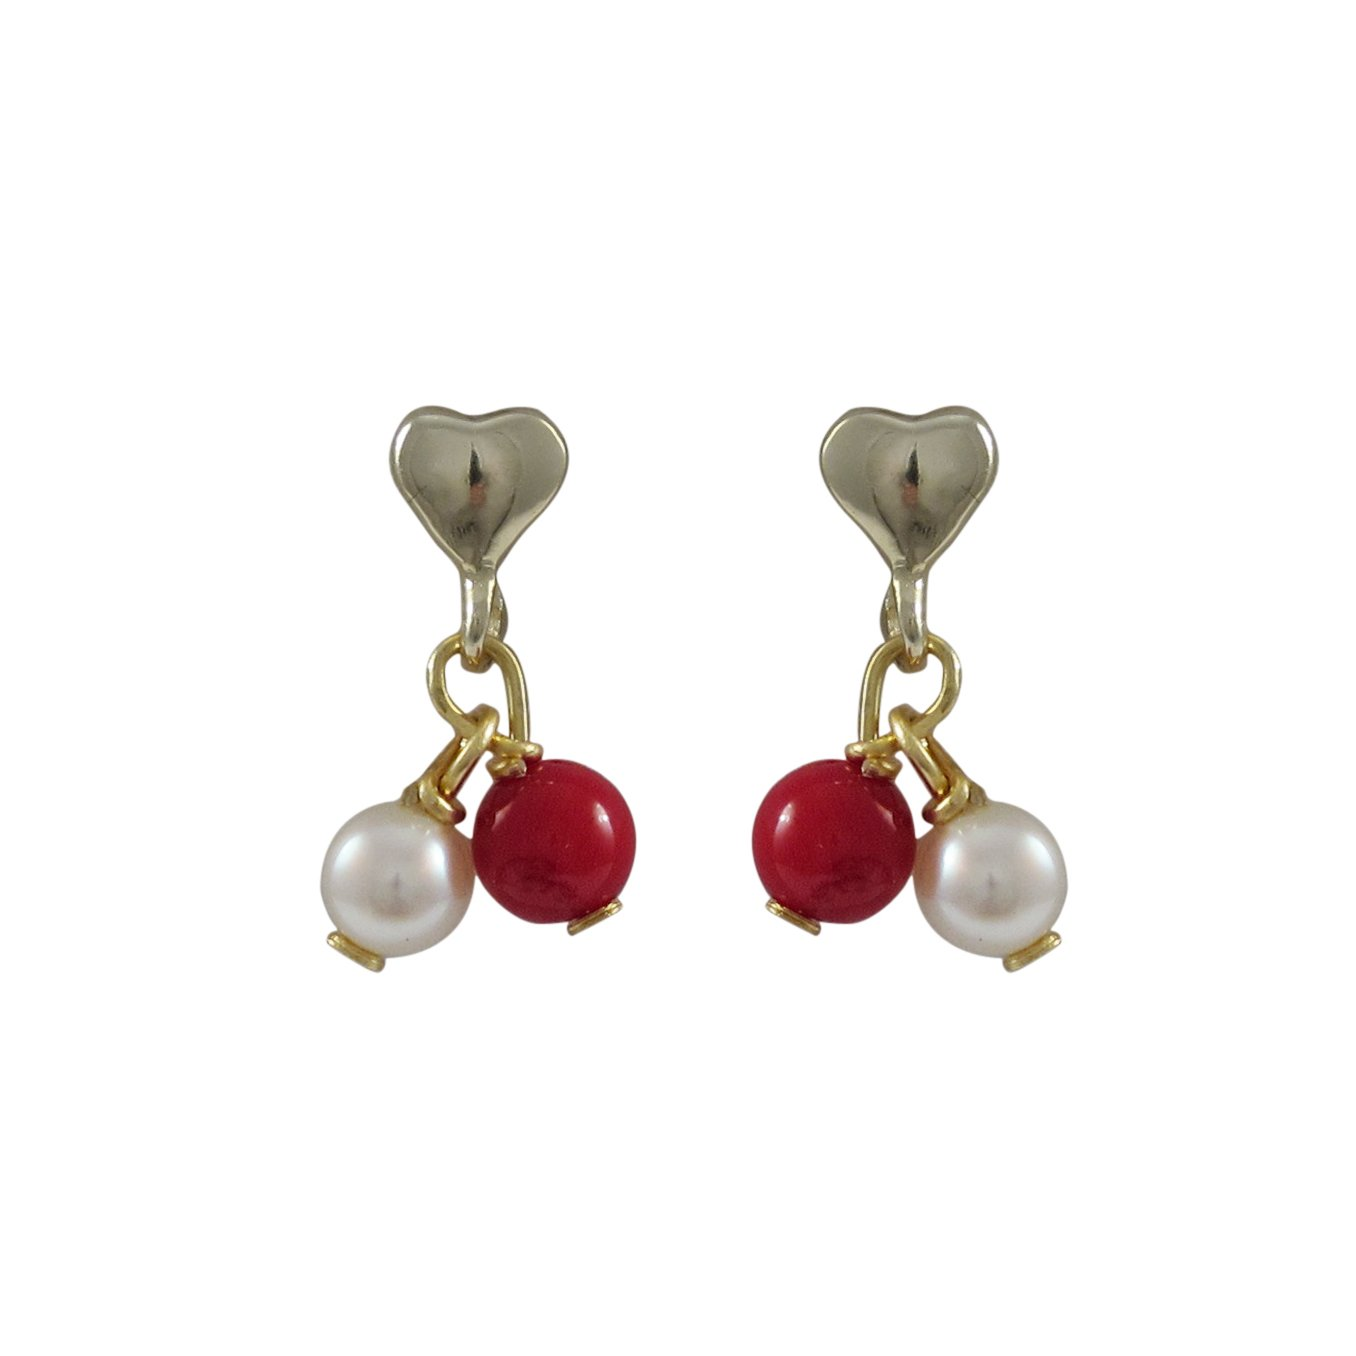 Ivy and Max Gold Finish Red Beads Faux Pearls Heart Girls Earrings